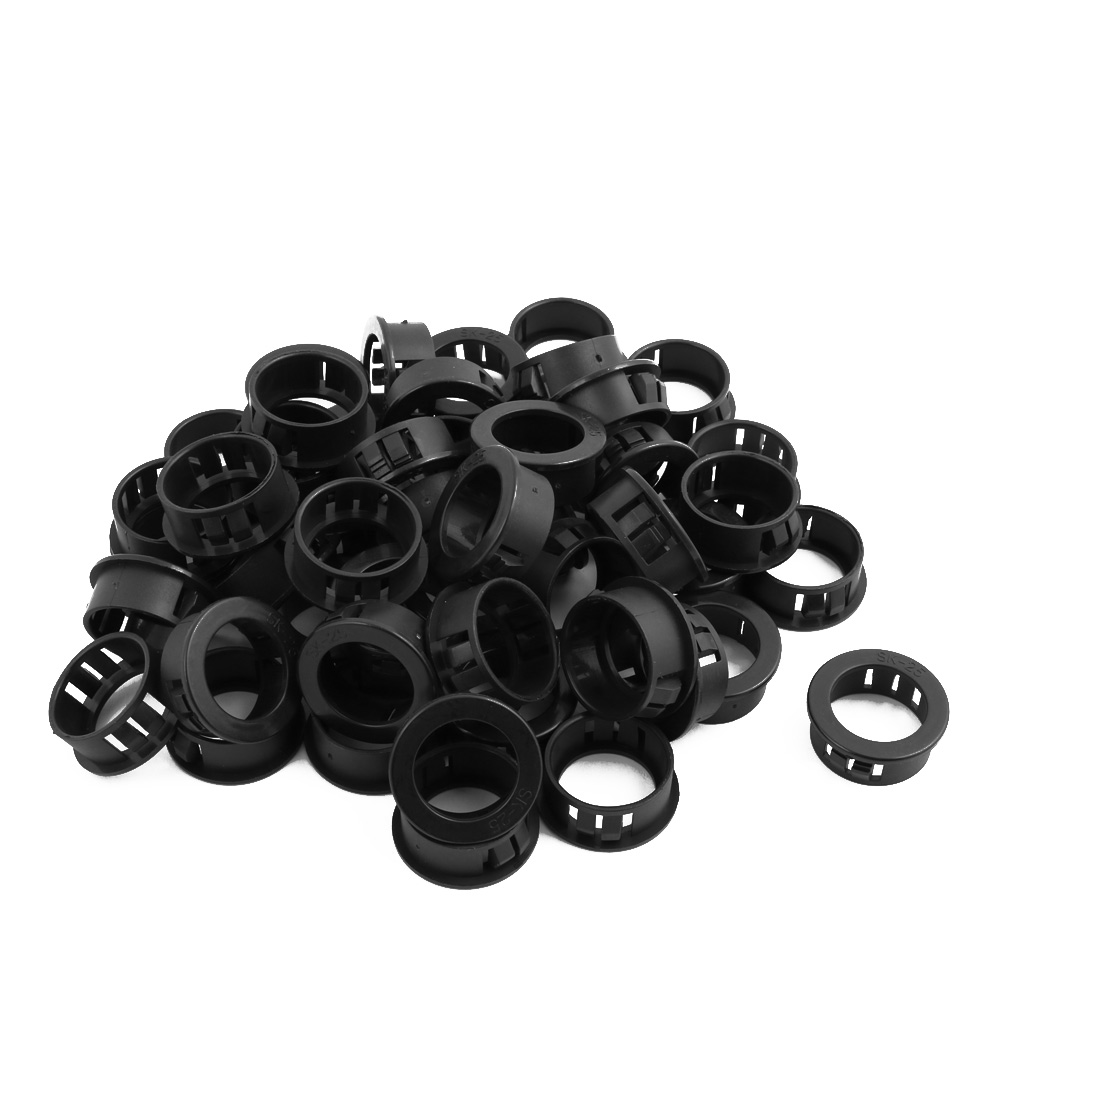 49pcs 25mm Mounted Dia Snap in Cable Wire Bushing Grommet Protector Black